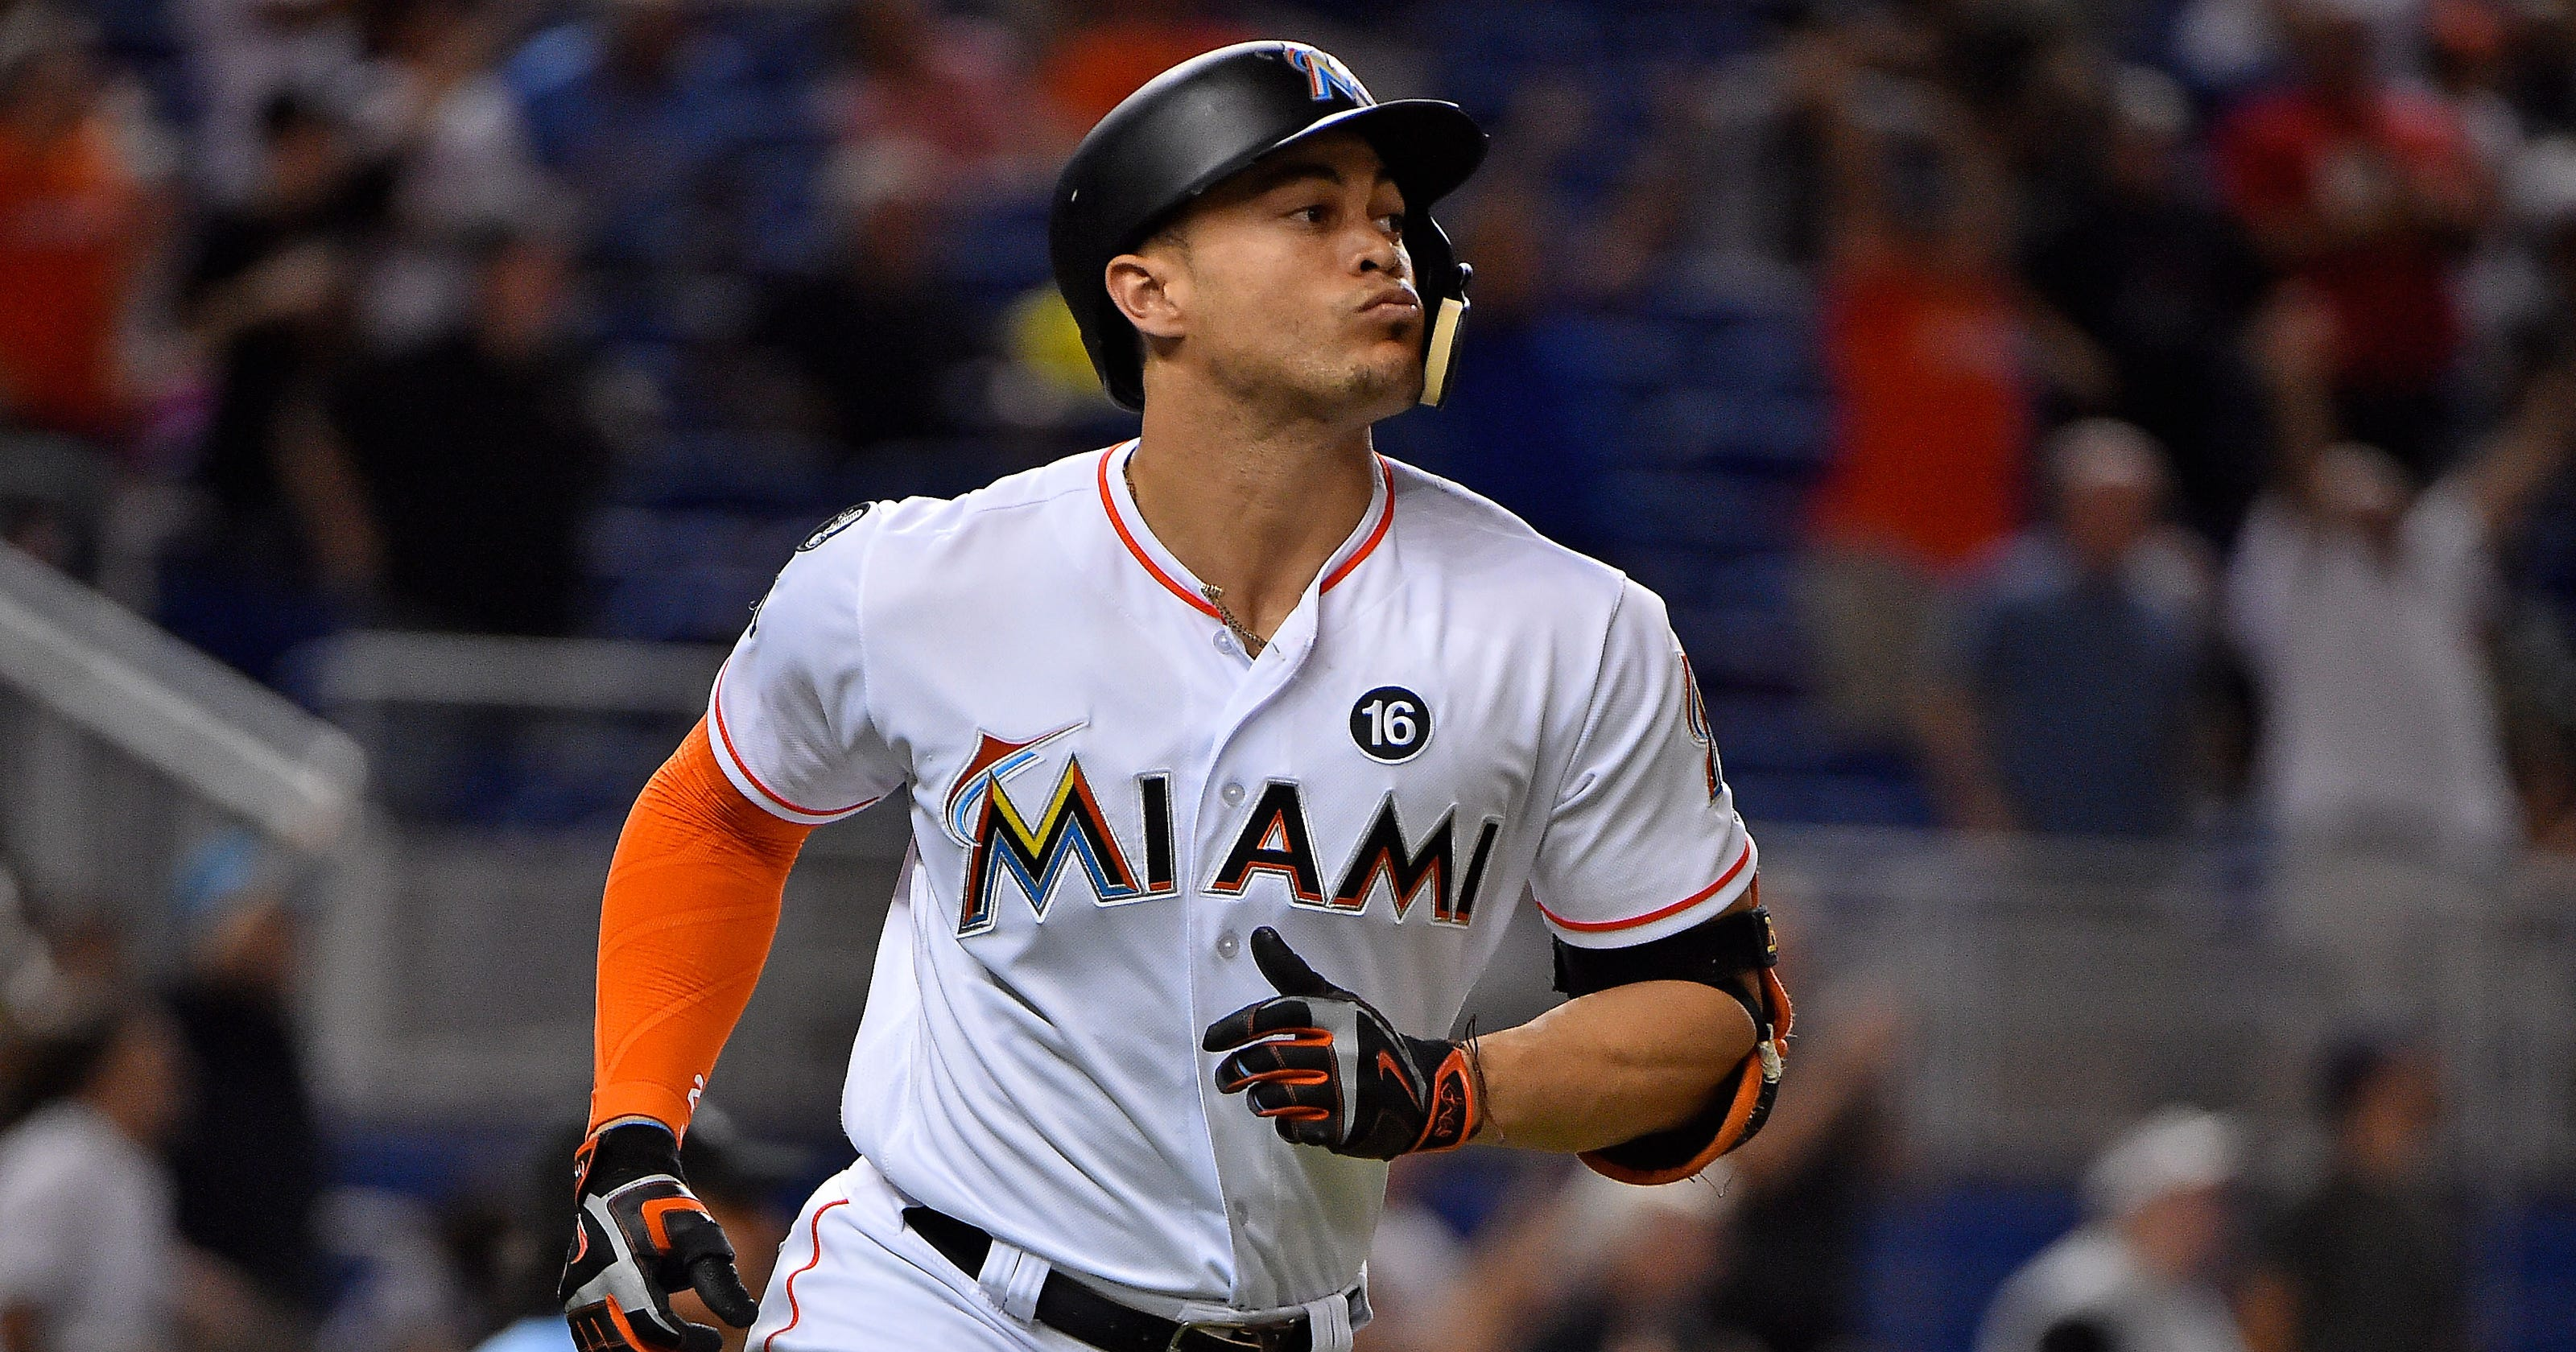 f02b9f617 Giancarlo Stanton launches two HRs to bring season total to 59